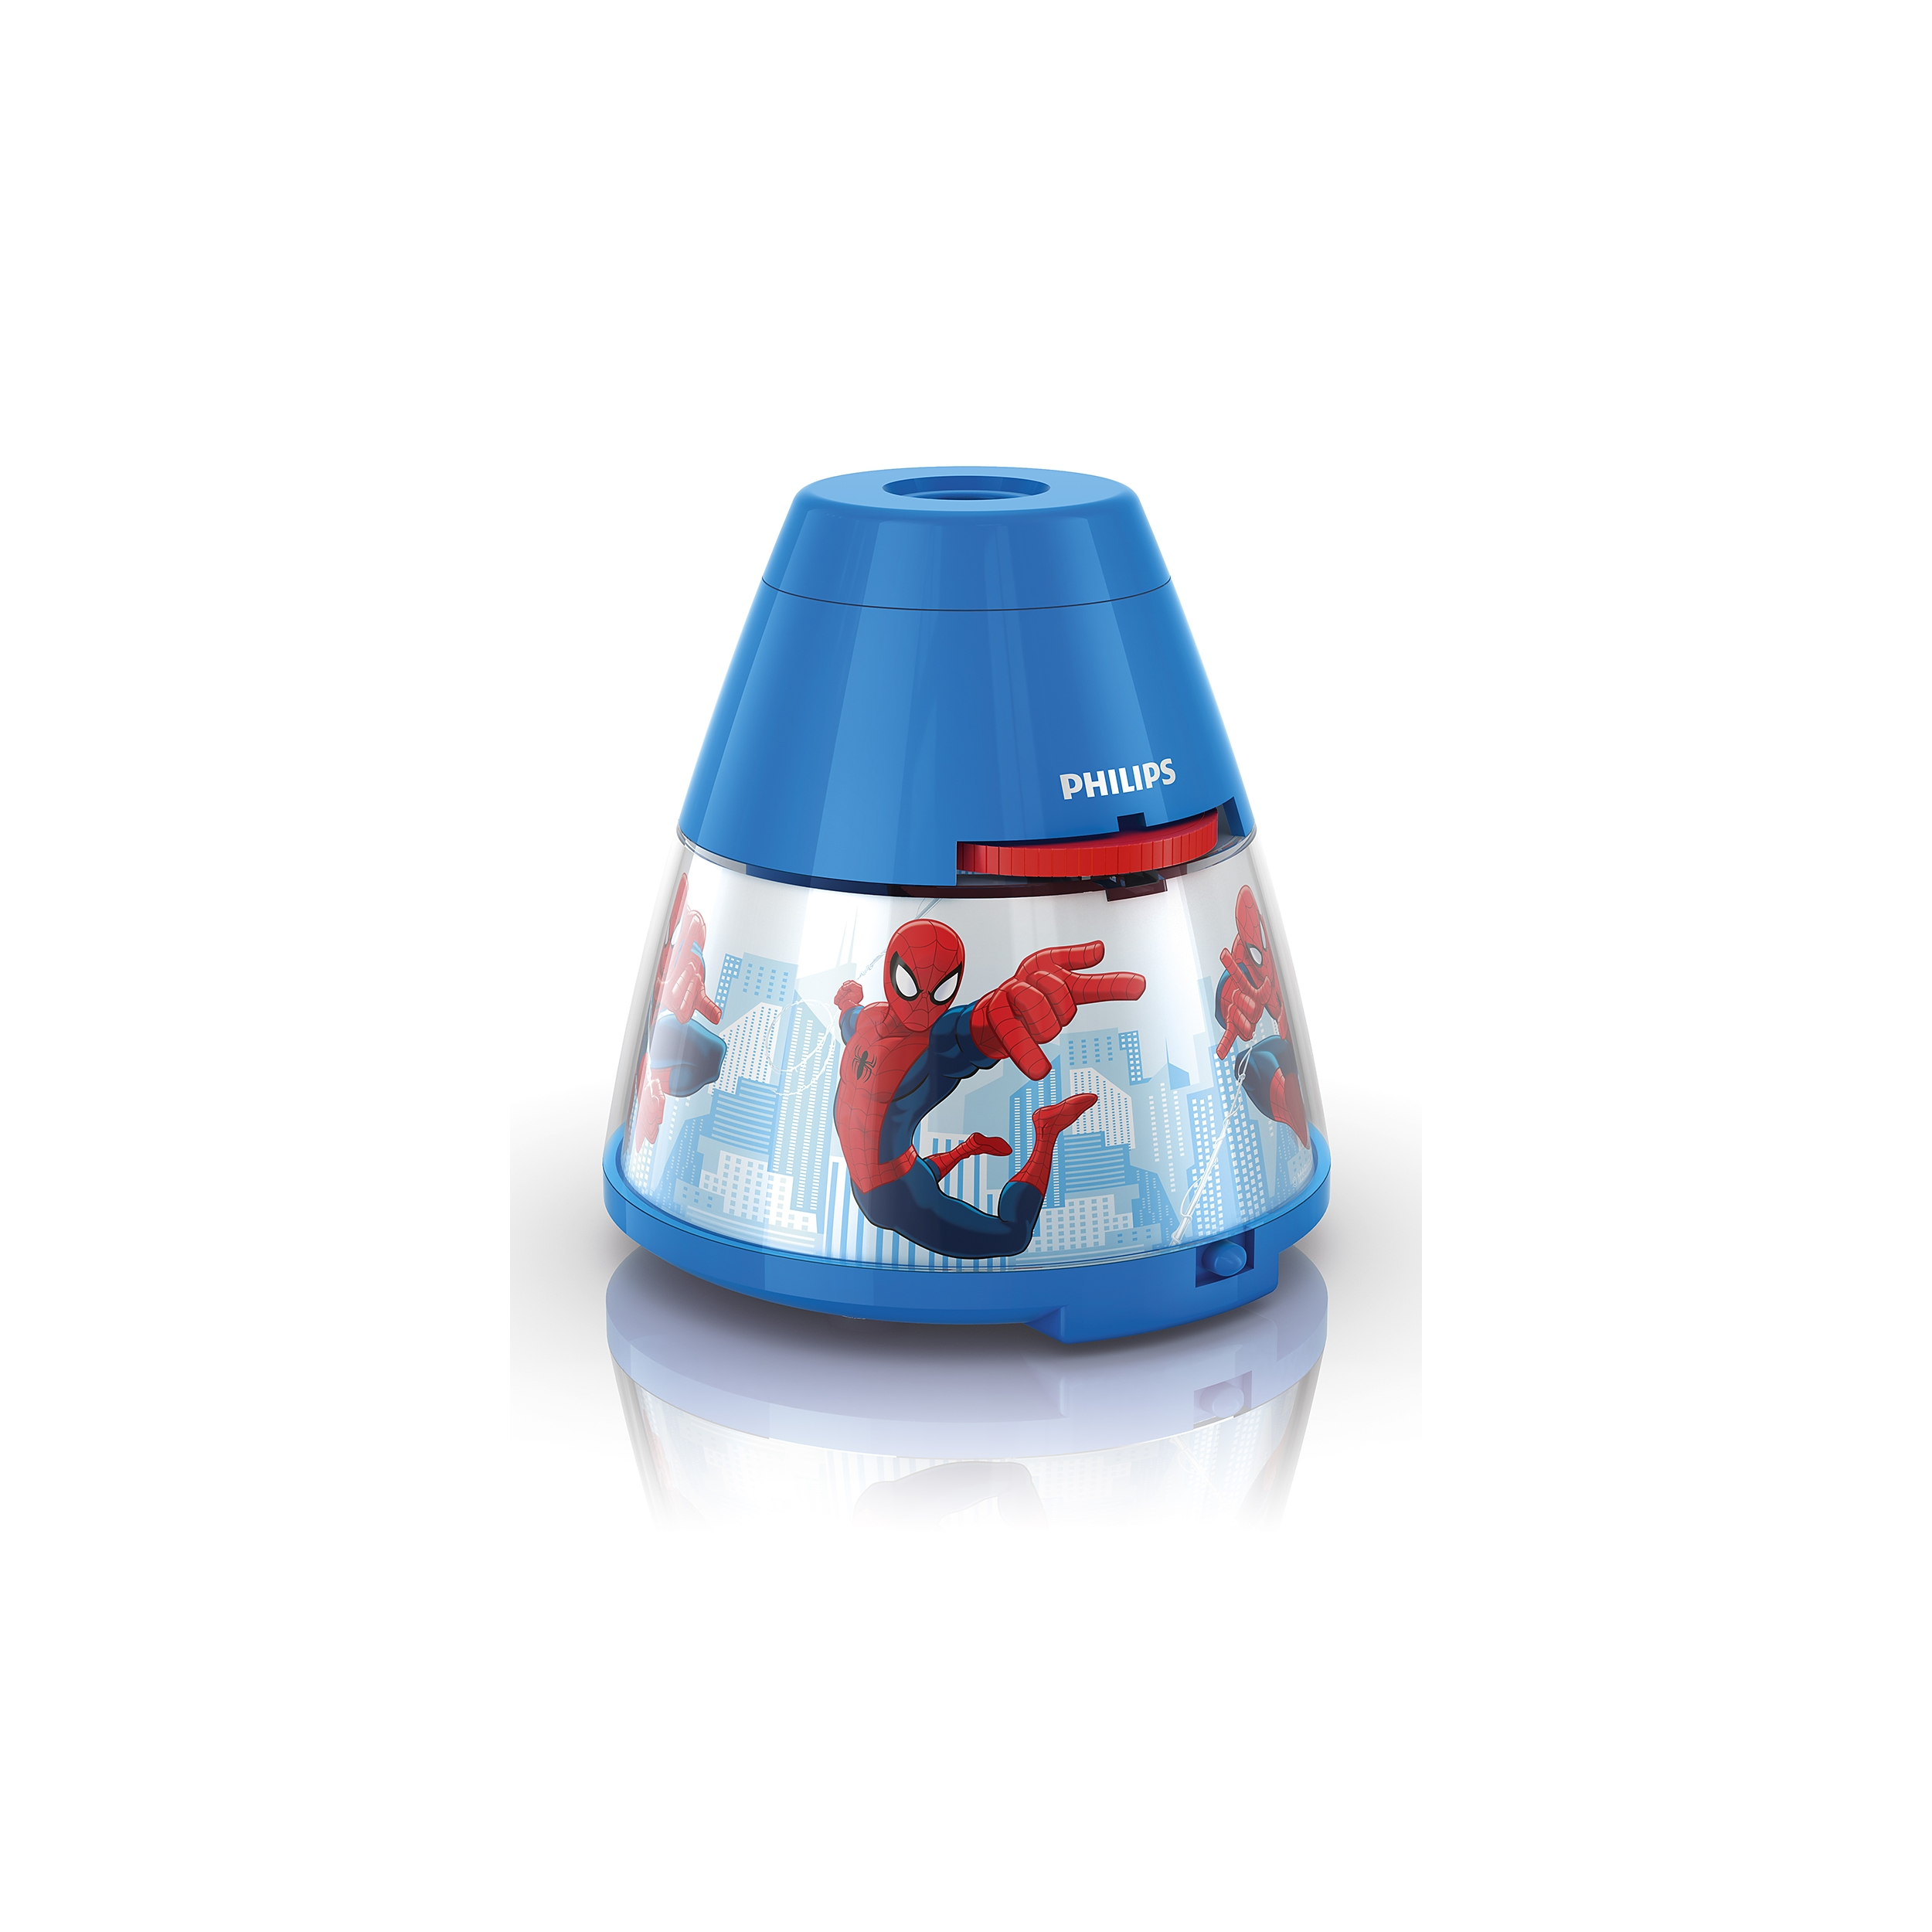 Led Lampe Kinderzimmer Philips Led Lampe Kinderzimmer Disney Projektor Spiderman